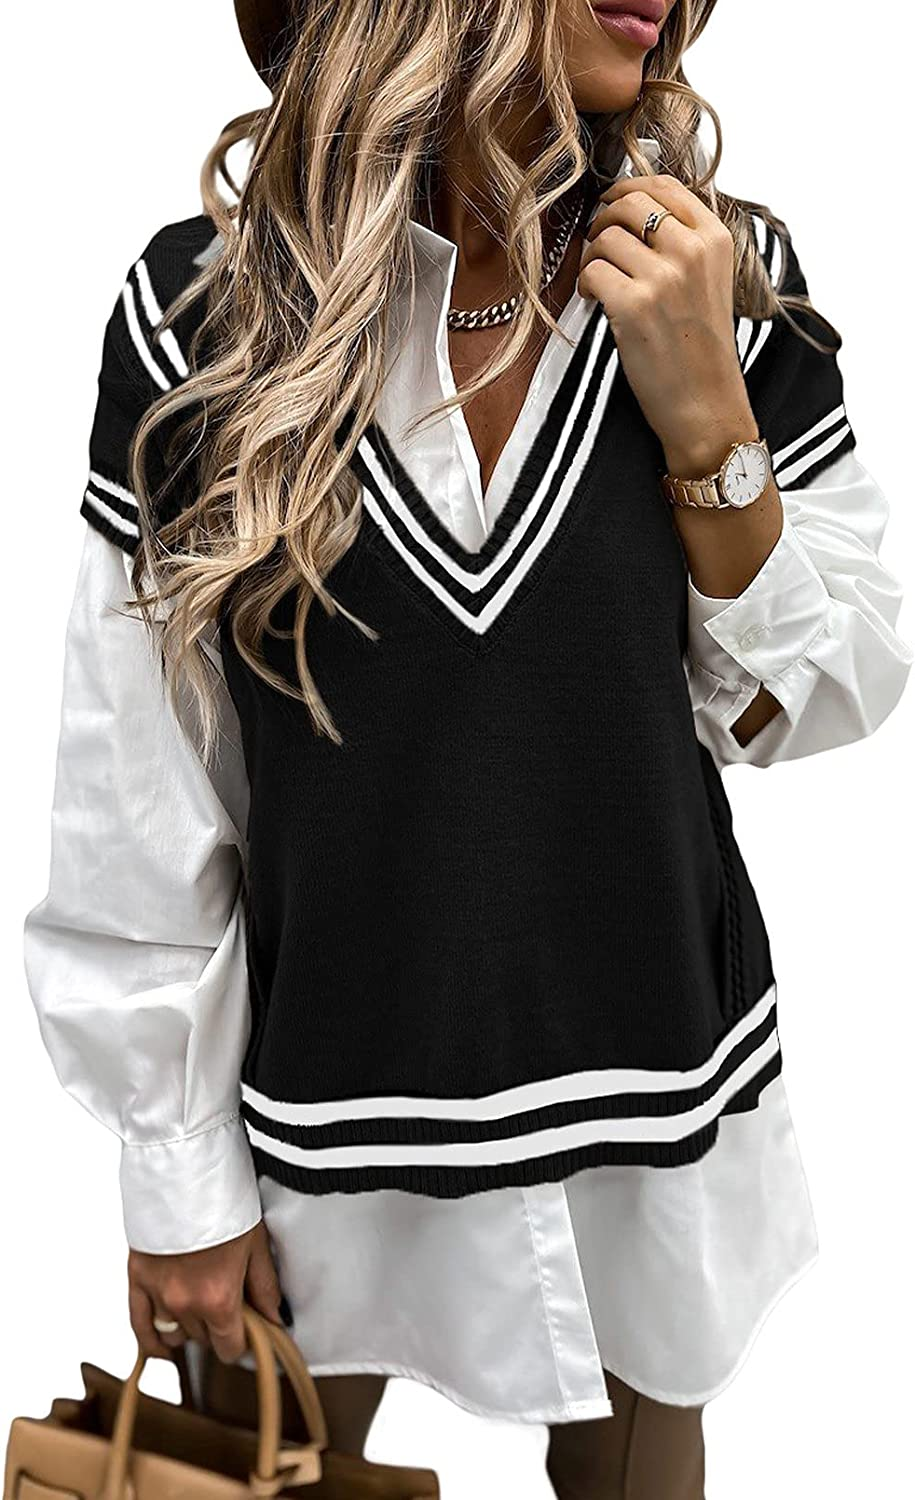 Happy Sailed Womens Oversized Sleeveless Knitted Sweater Vest Vintage V Neck Loose Cable Knit Pullover Tops S-2XL